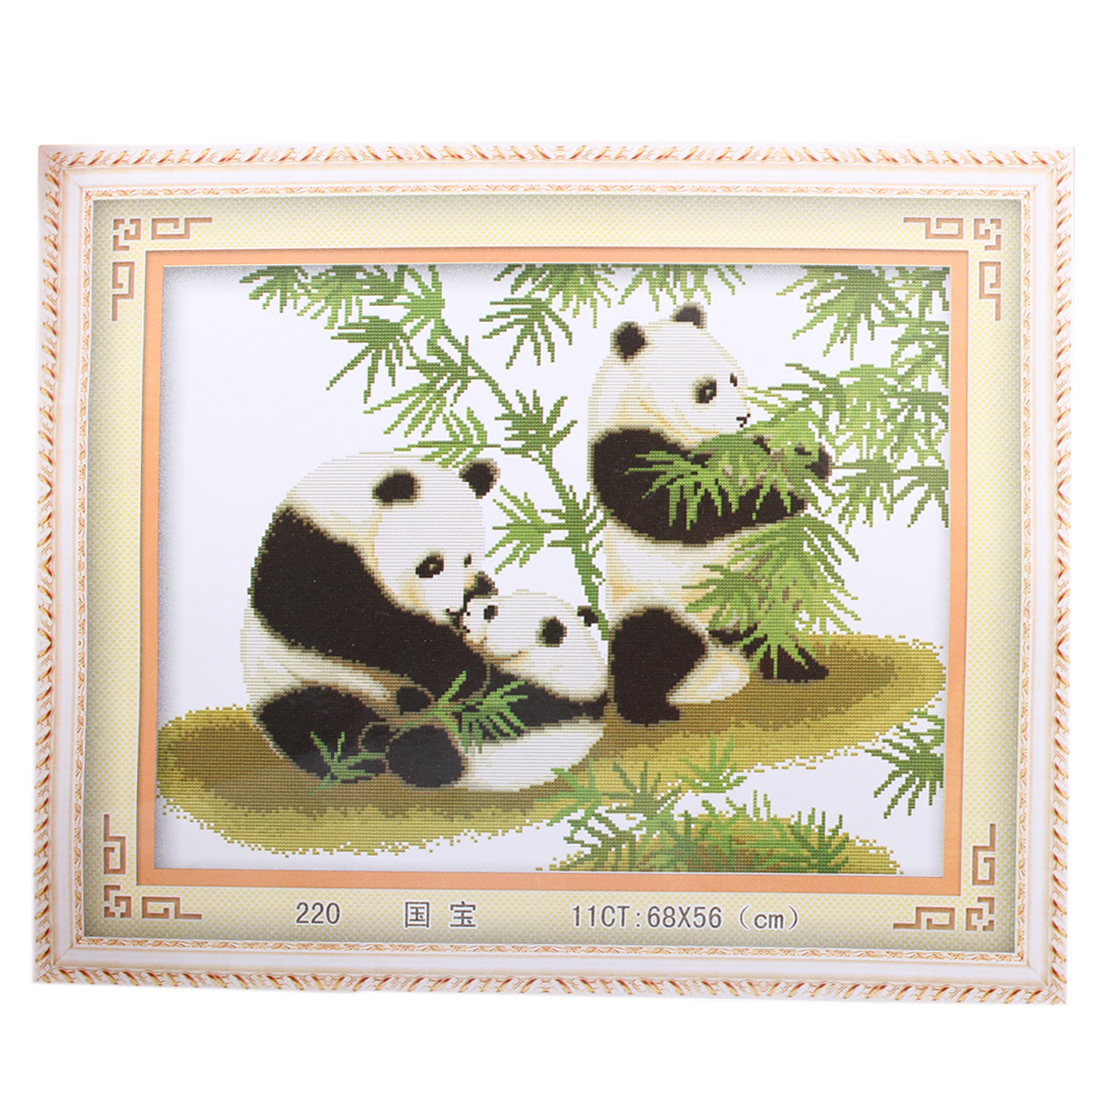 60cm x 48cm Panda Bamboo Pattern Stamped Cross Stitch Counted Kit for Lady Woman